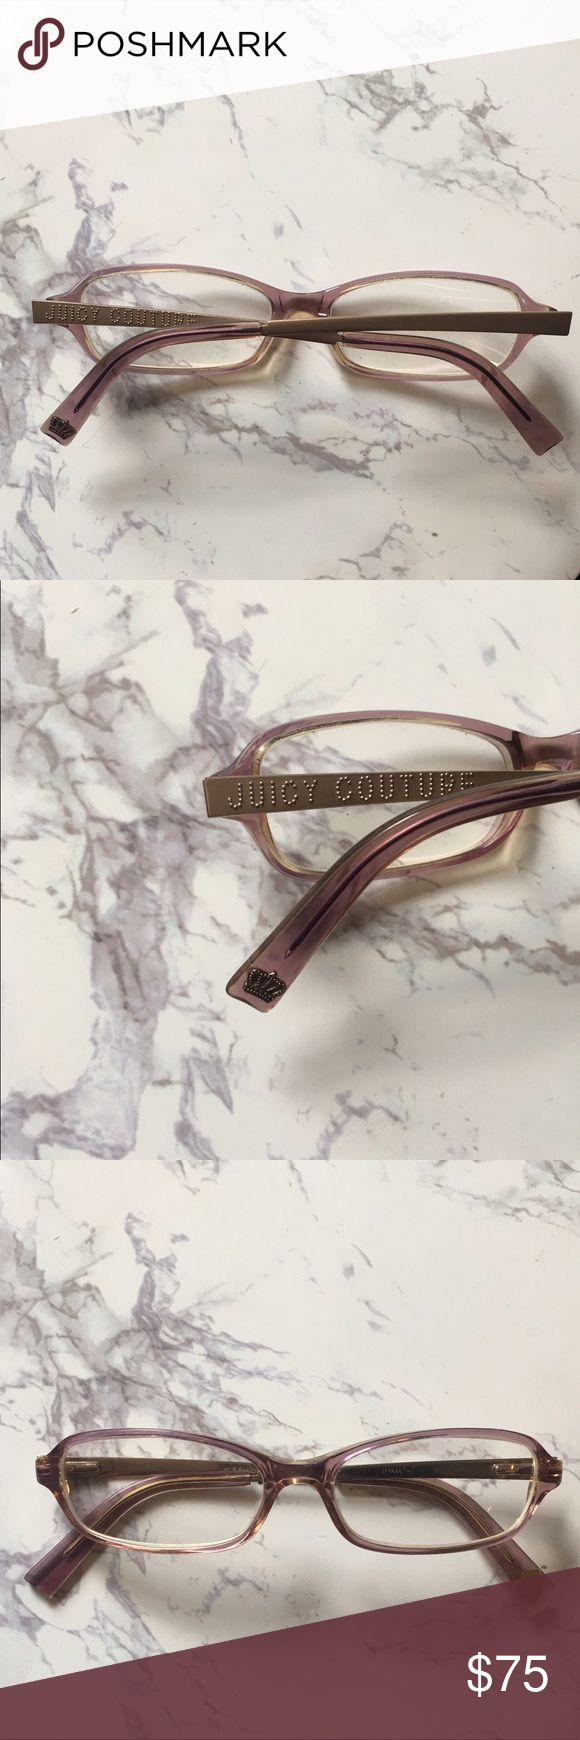 Juicy Couture Reading Glasses Juicy Couture Reading Glasses with Pink/Gold Iridescent Color Frames. Lenses can be interchanged to accommodate different prescription strengths. See photos for beautiful gold detail and embellishments on sides. Juicy Couture Accessories Glasses